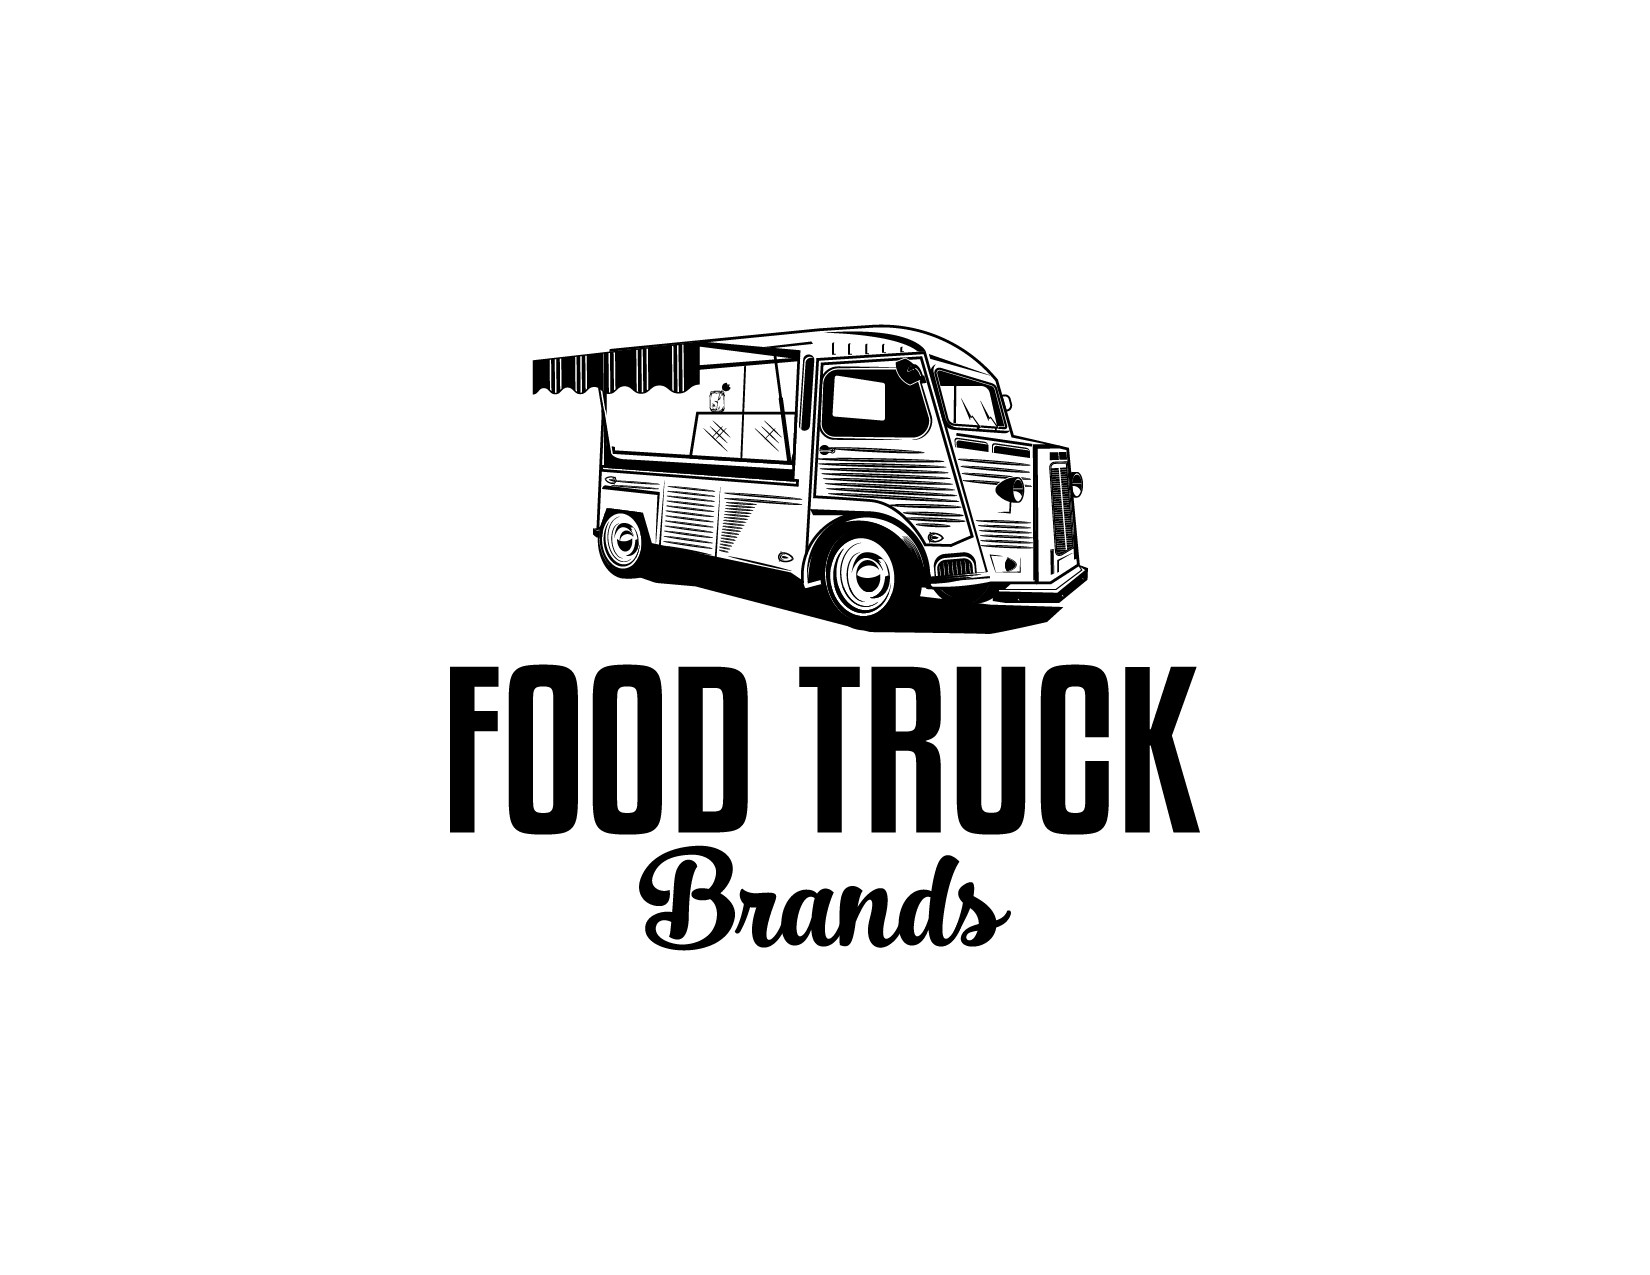 Food Truck Brands logo contest